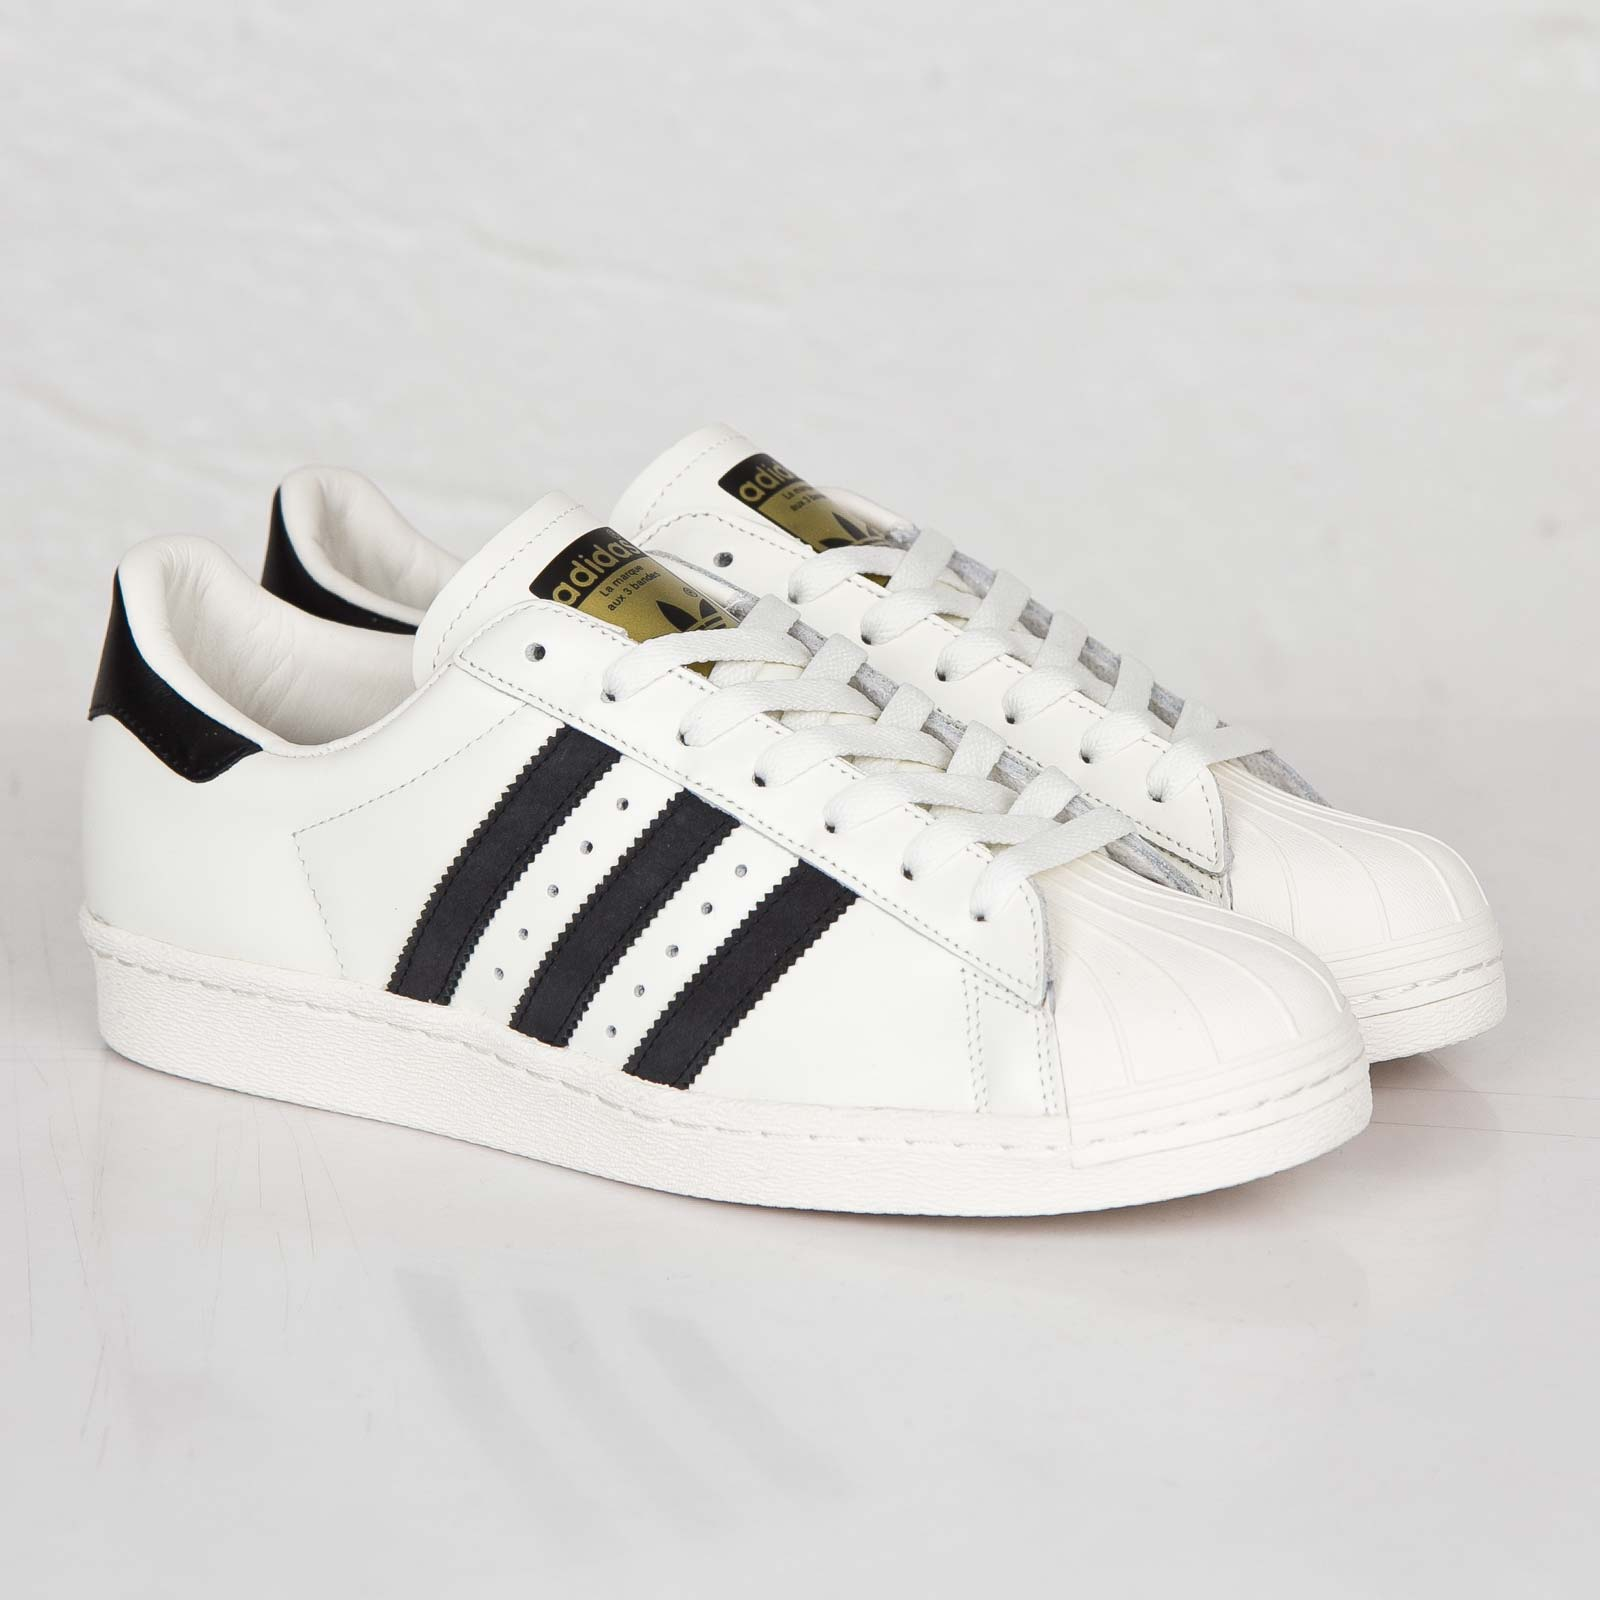 huge selection of 4d281 e4b7e adidas Superstar 80s Deluxe - B25963 - Sneakersnstuff ...